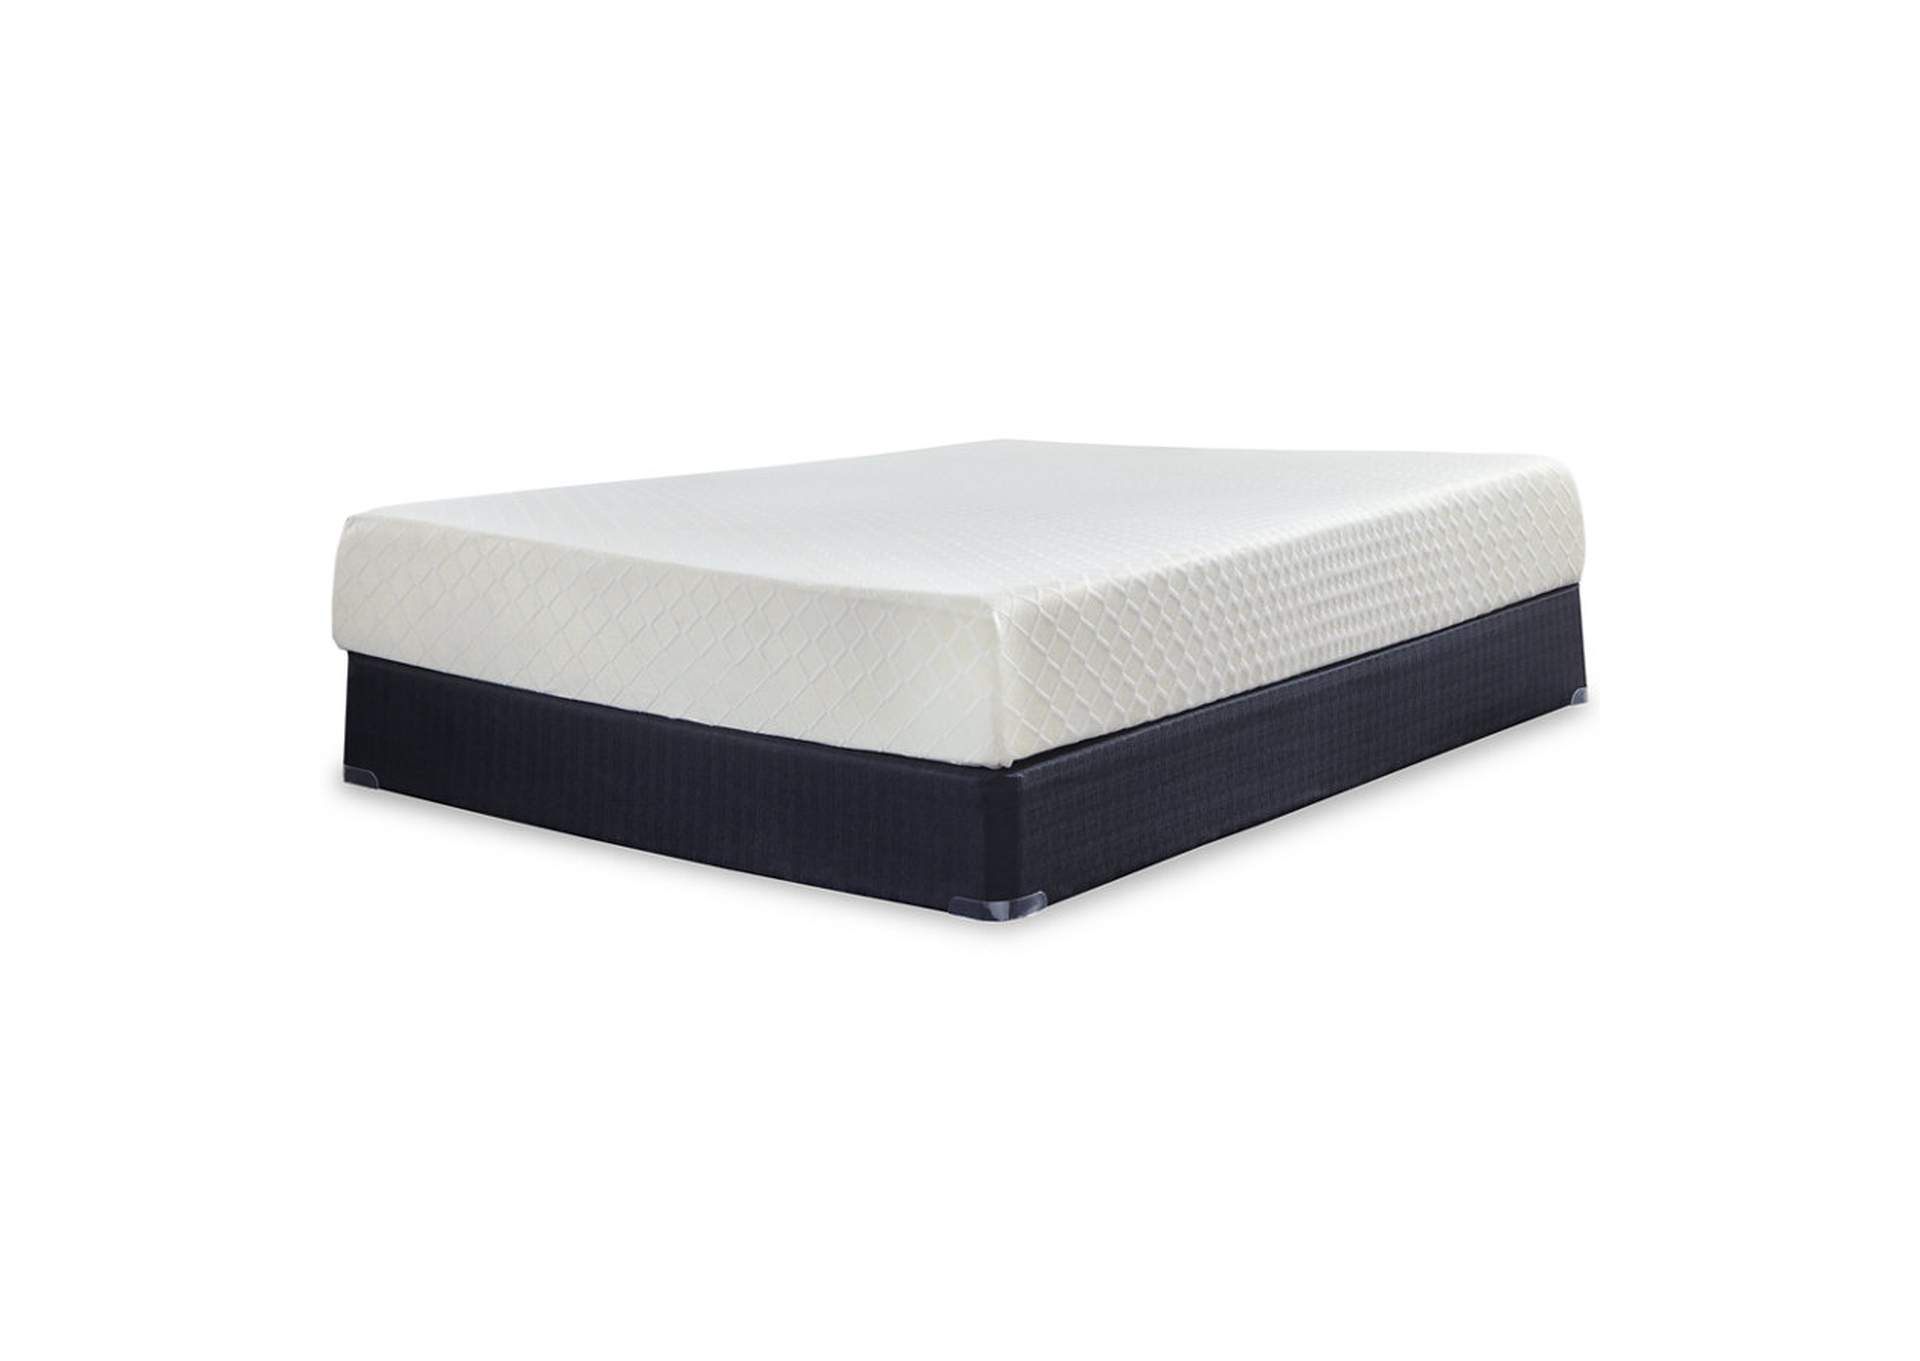 10 Inch Chime Memory Foam Queen Mattress in a Box w/Foundation,Sierra Sleep by Ashley